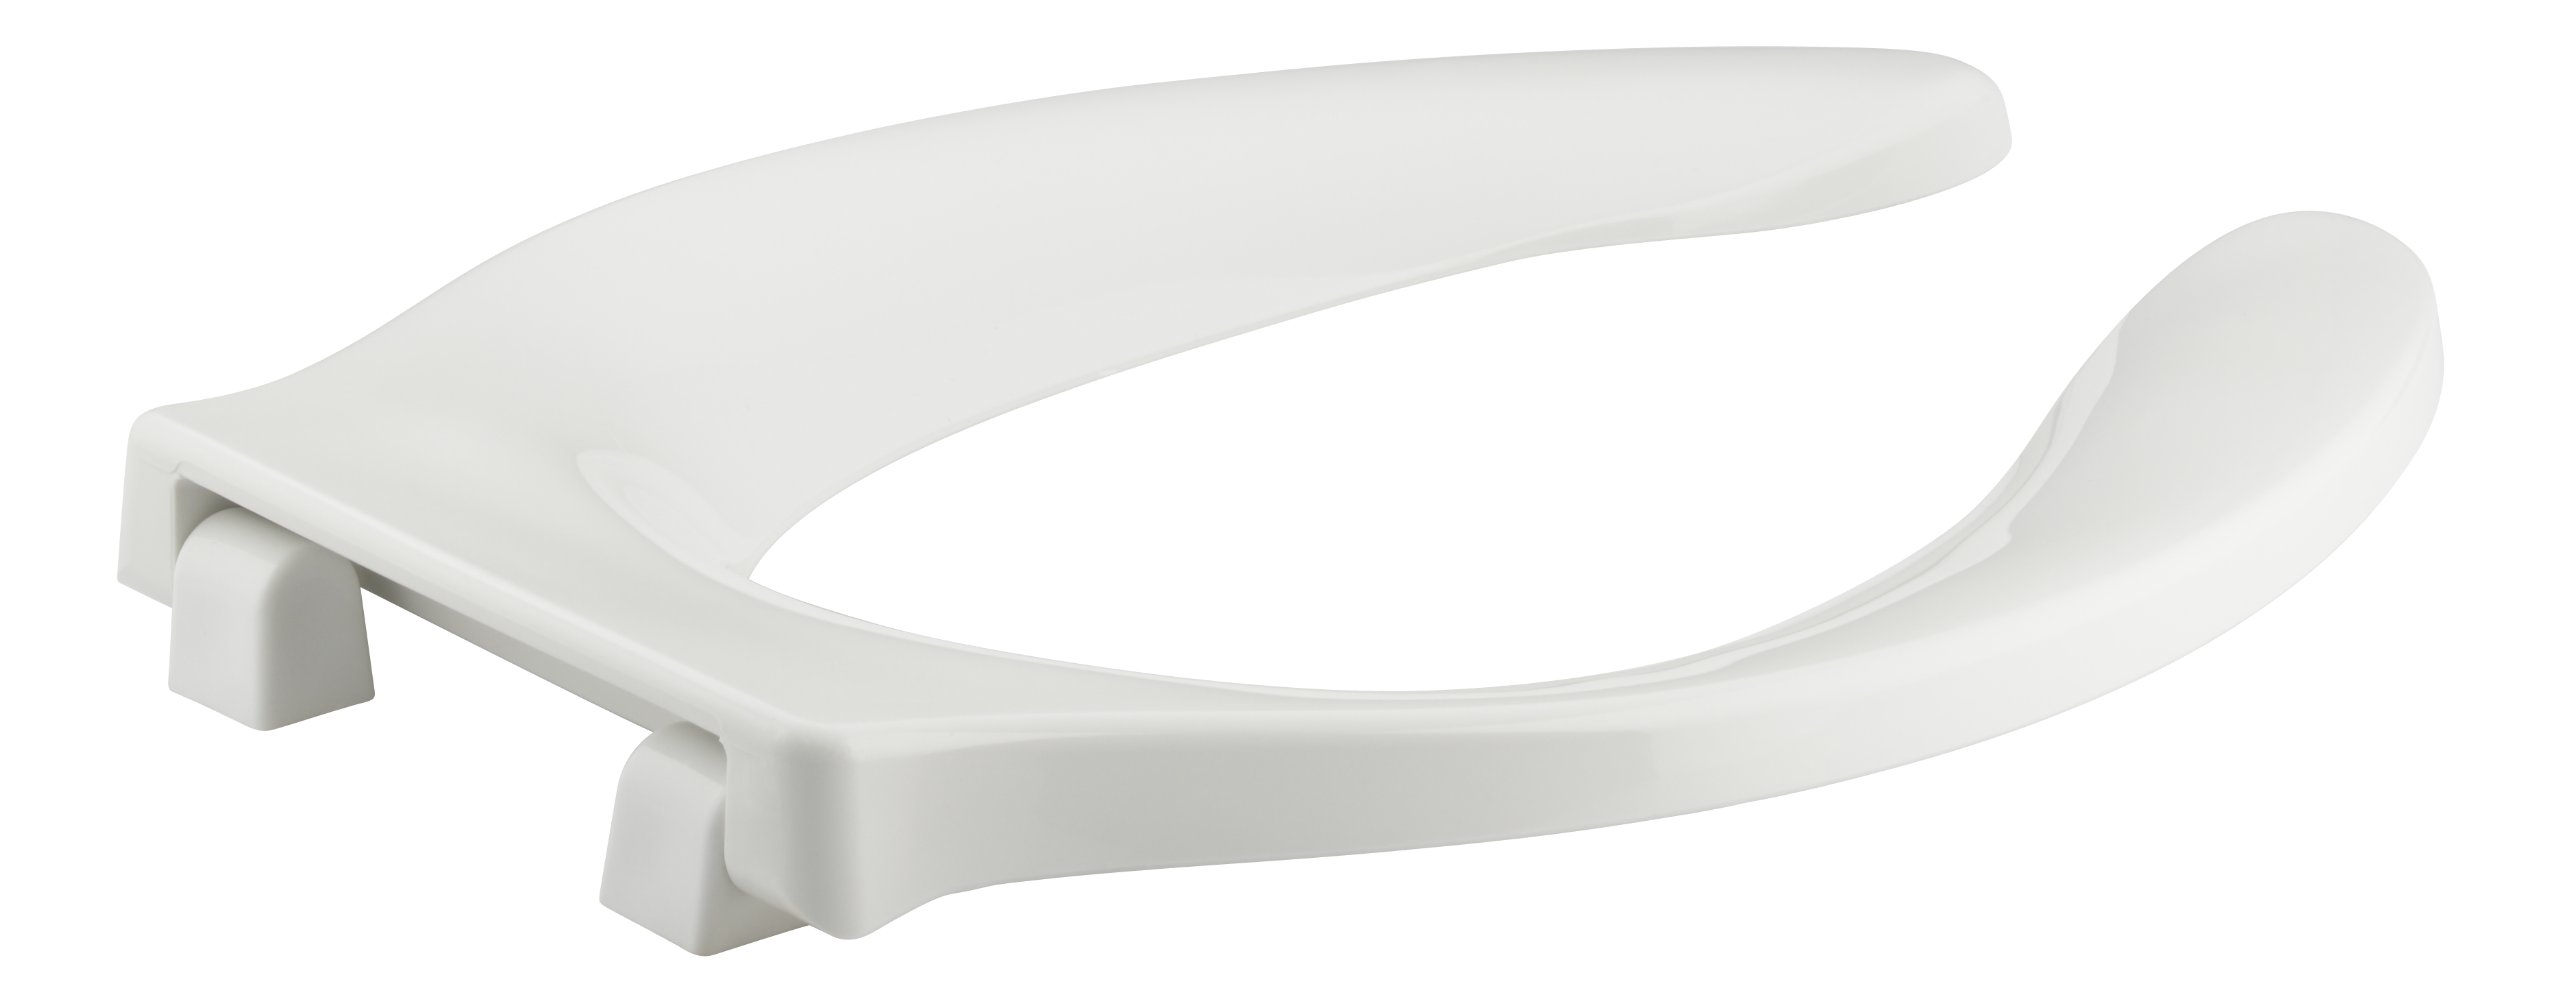 KOHLER K-4731-SA-0 Stronghold Elongated Toilet Seat with Stainless Steel Check Hinge and Antimicrobial Agent, White